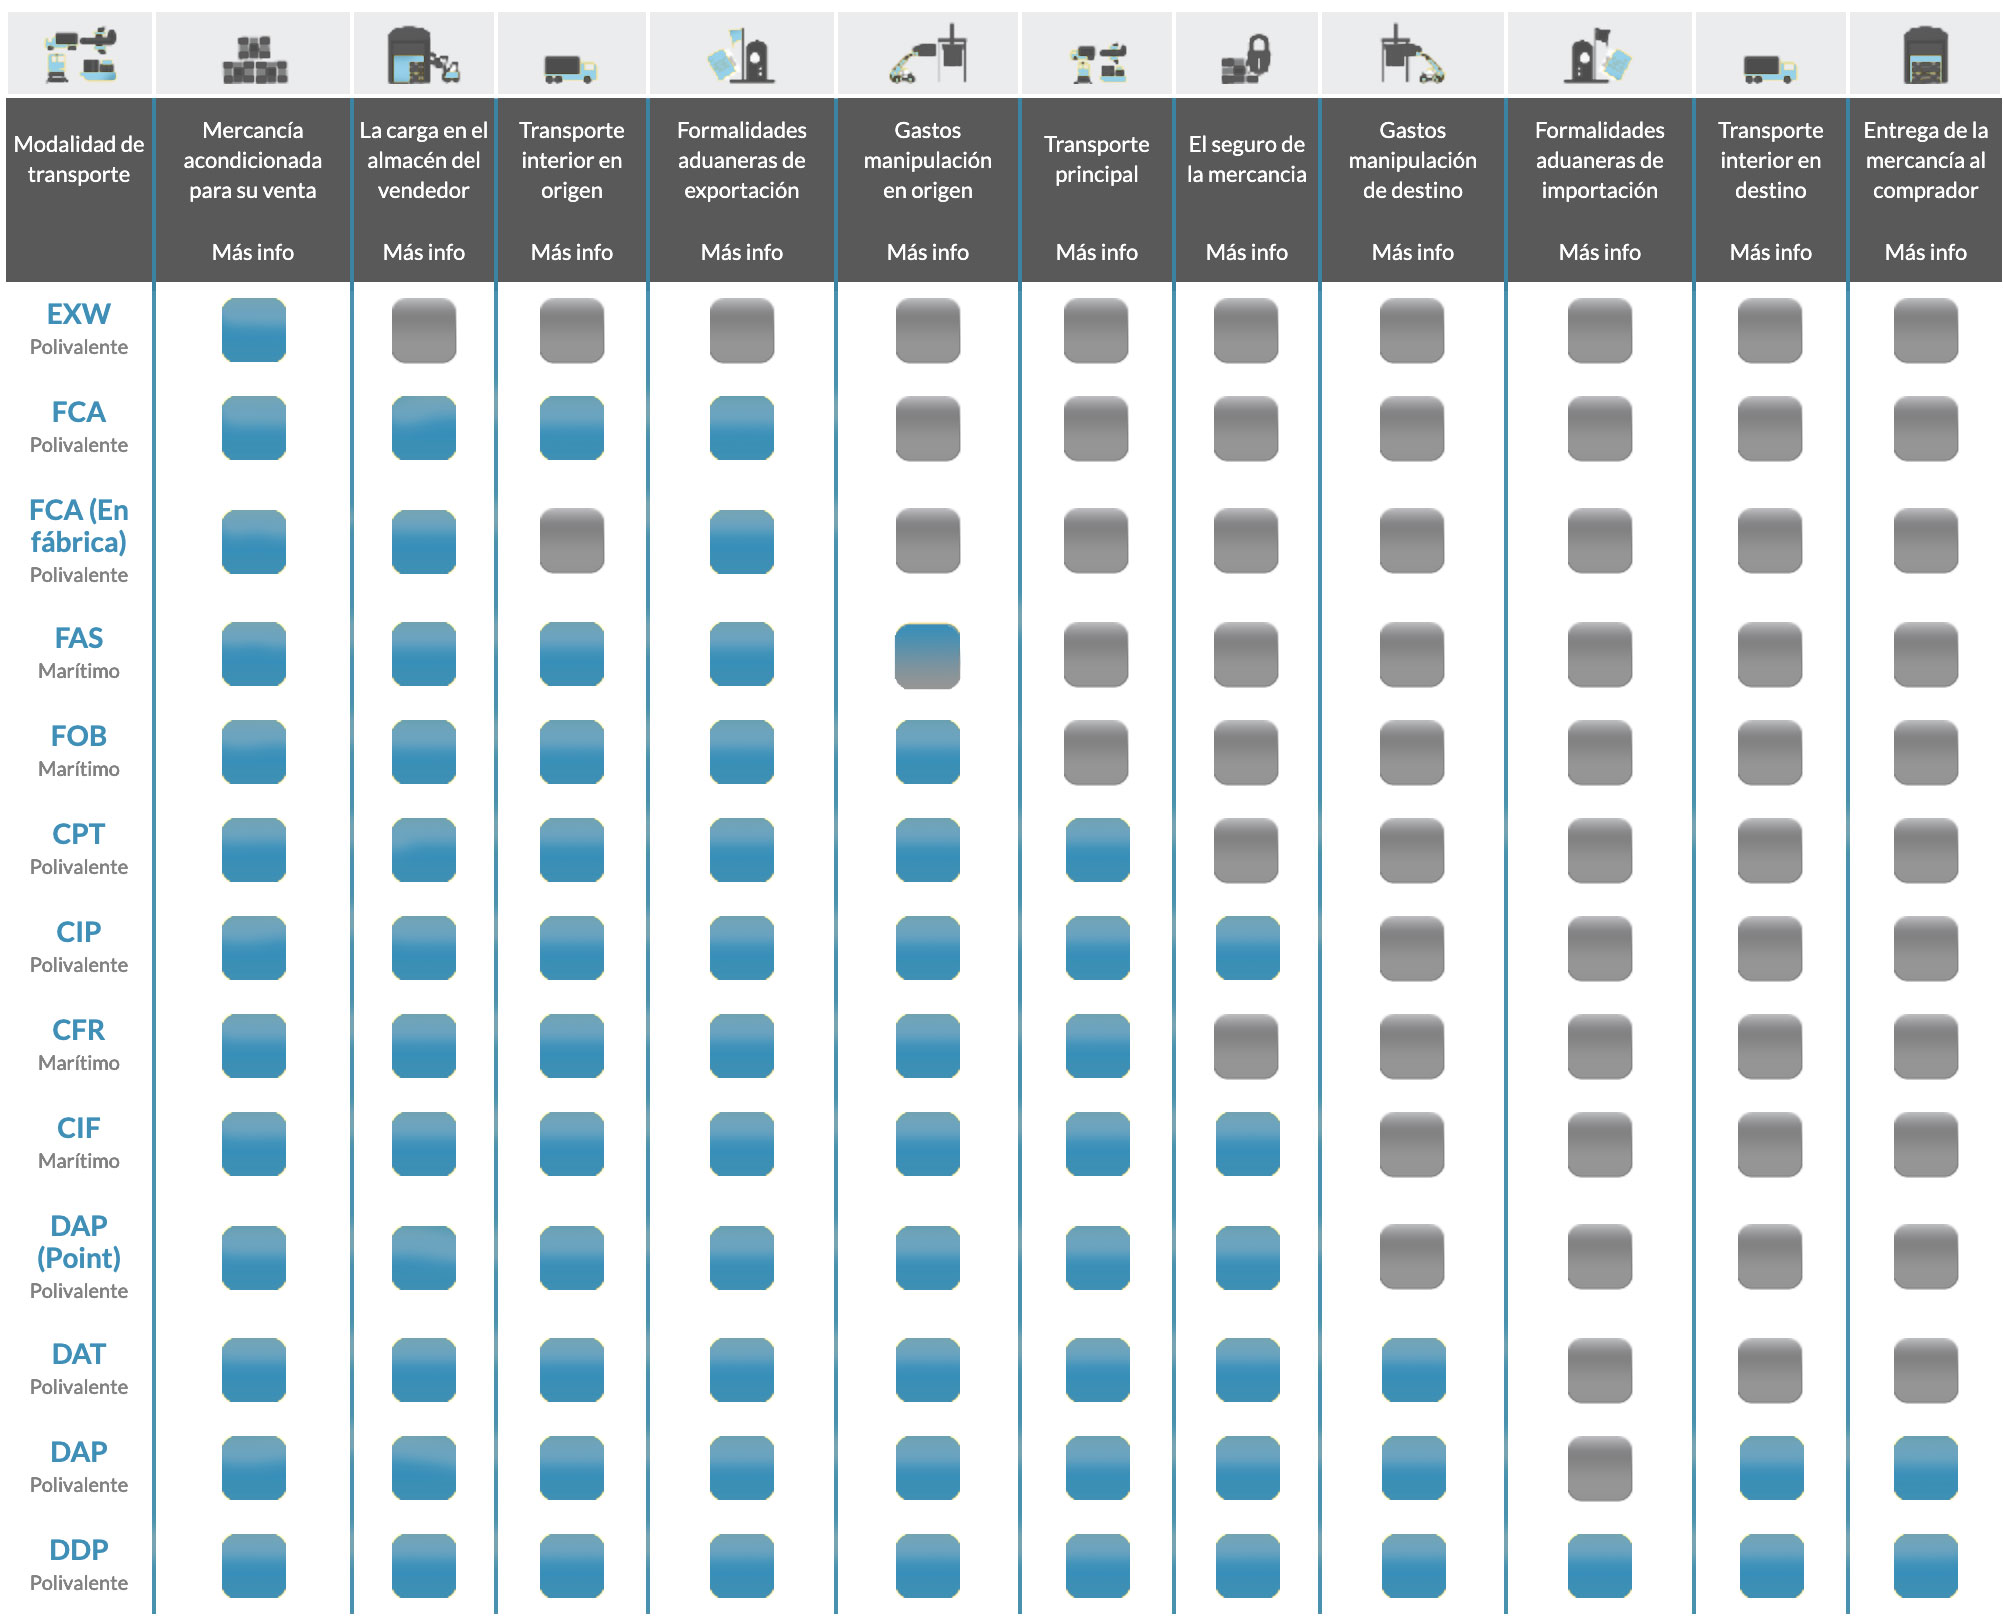 Incoterms classification and types